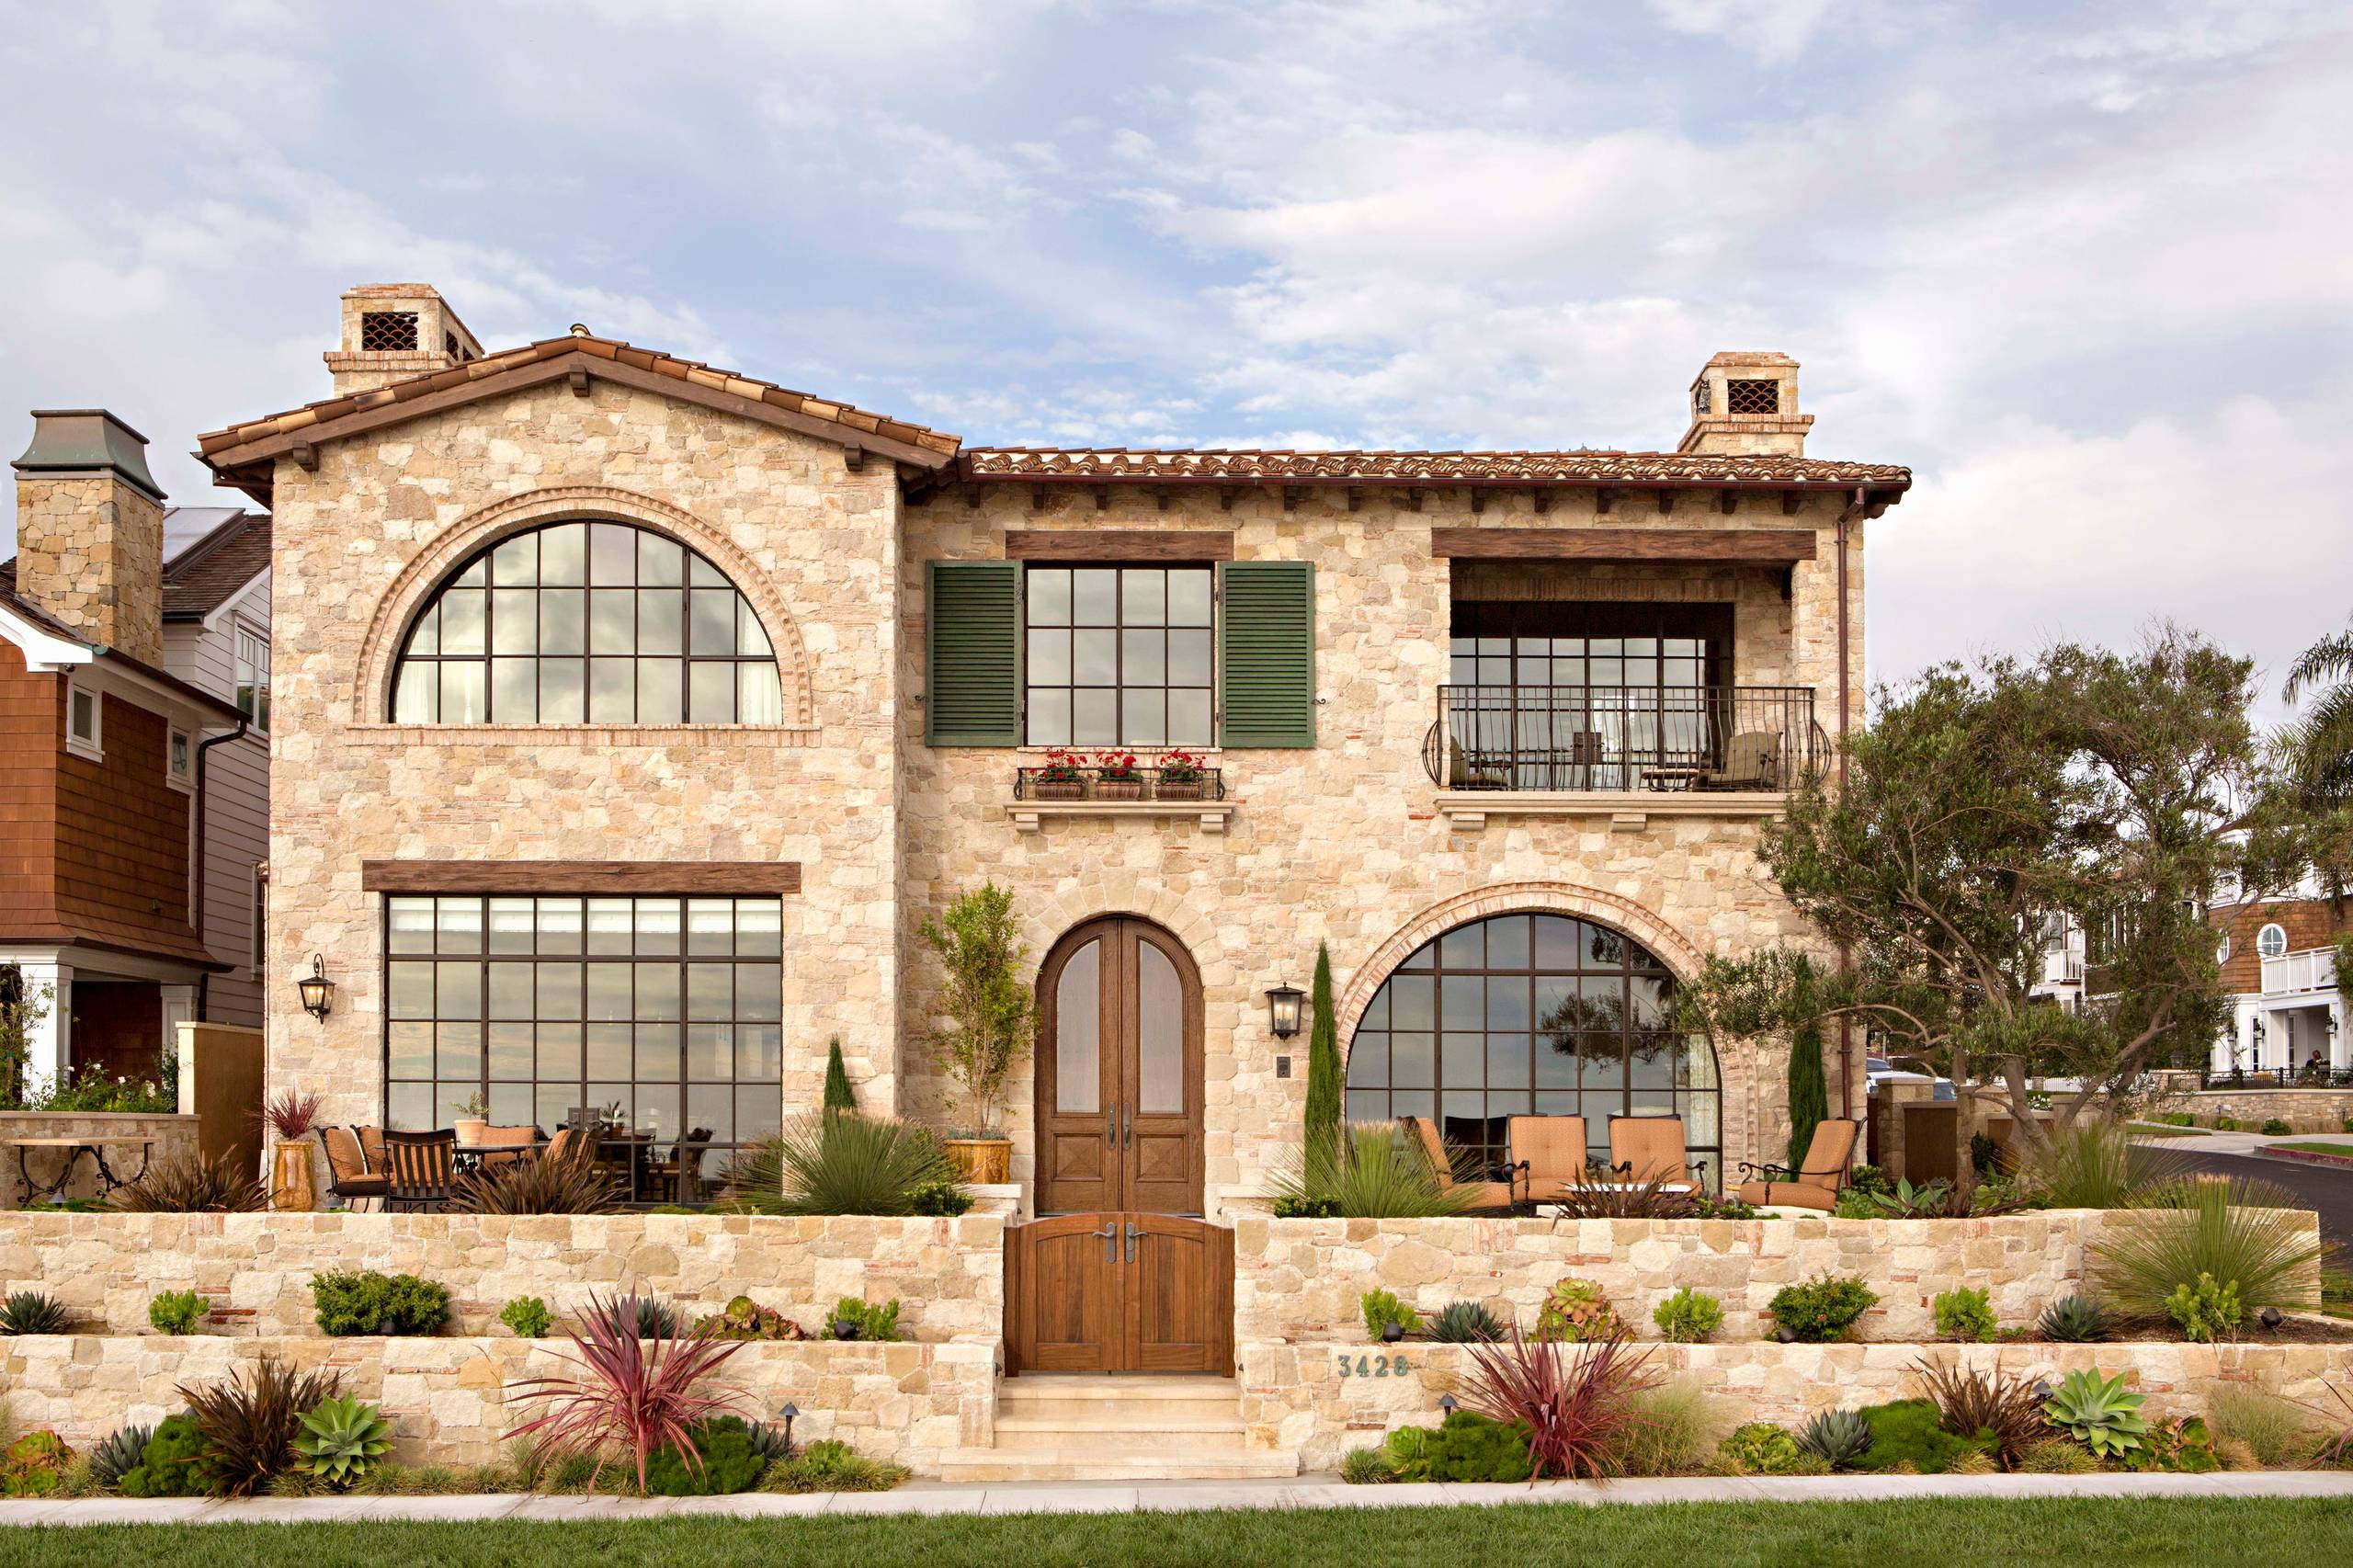 15 Exceptional Mediterranean Home Designs You Re Going To Fall In Love With Part 2